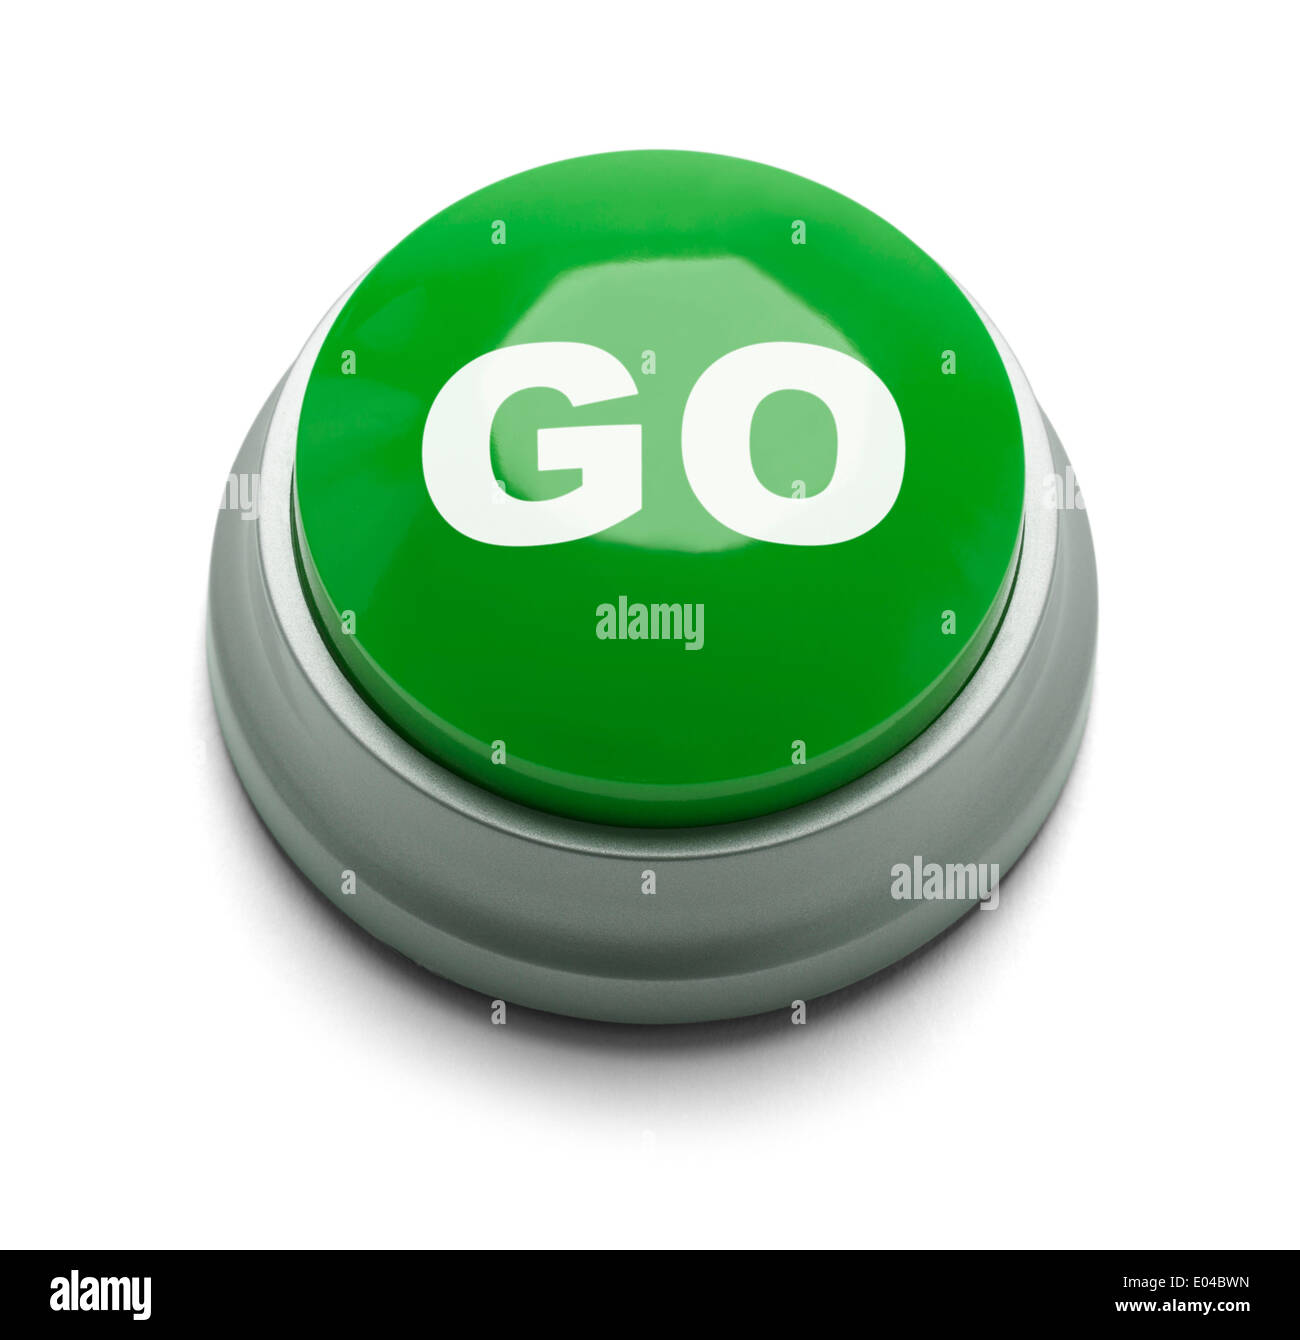 Large green button with the word go on it isolated on a white background. - Stock Image